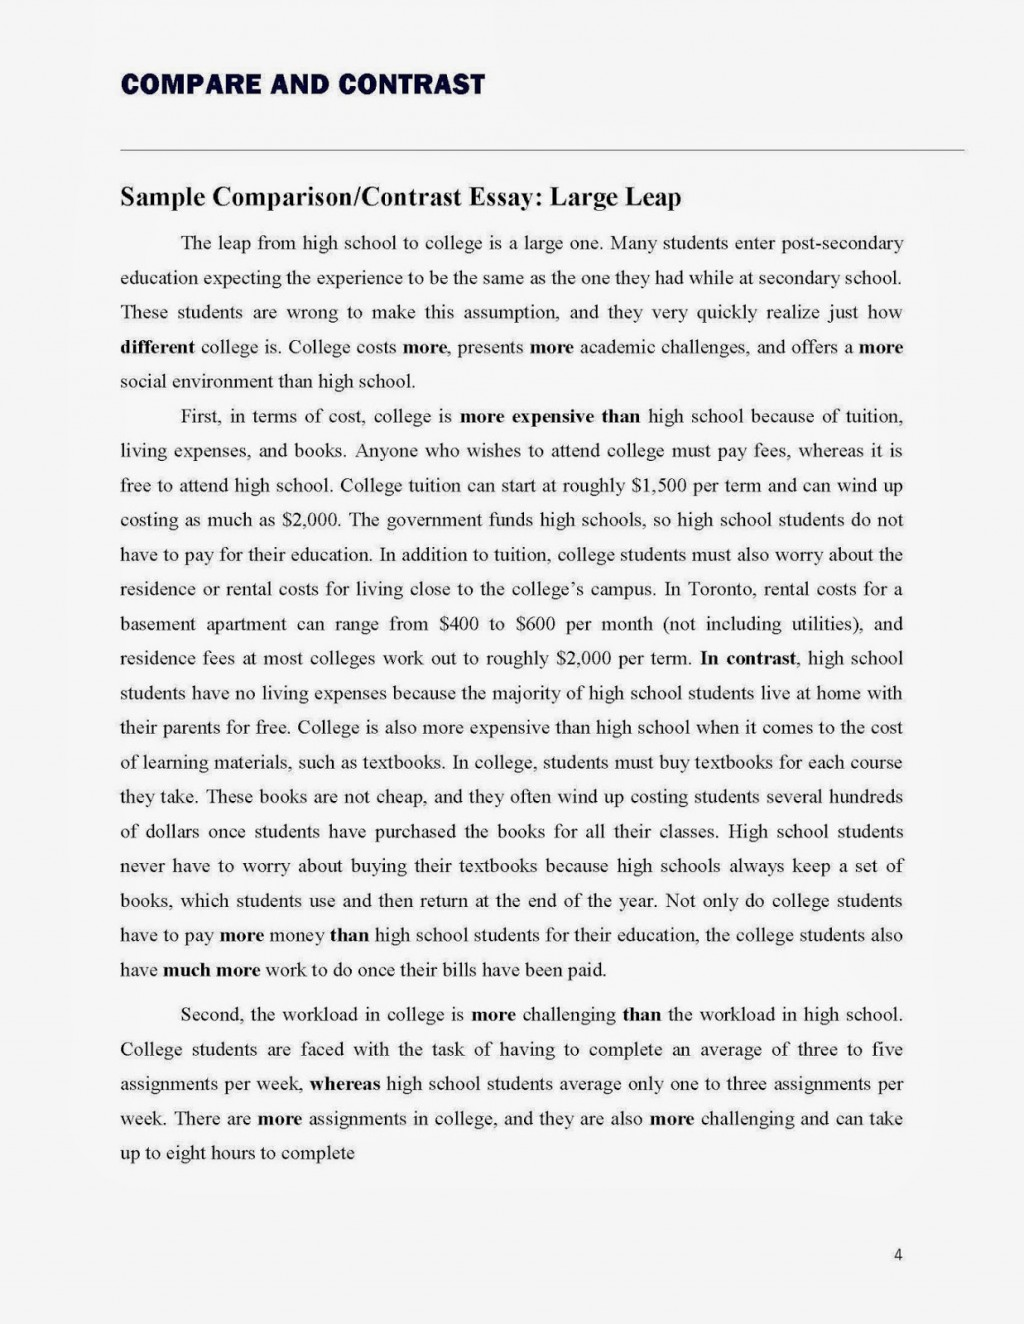 011 Compare And Contrast Essay Compareandcontrastessay Page 4h125 Frightening Outline 4th Grade Examples Large